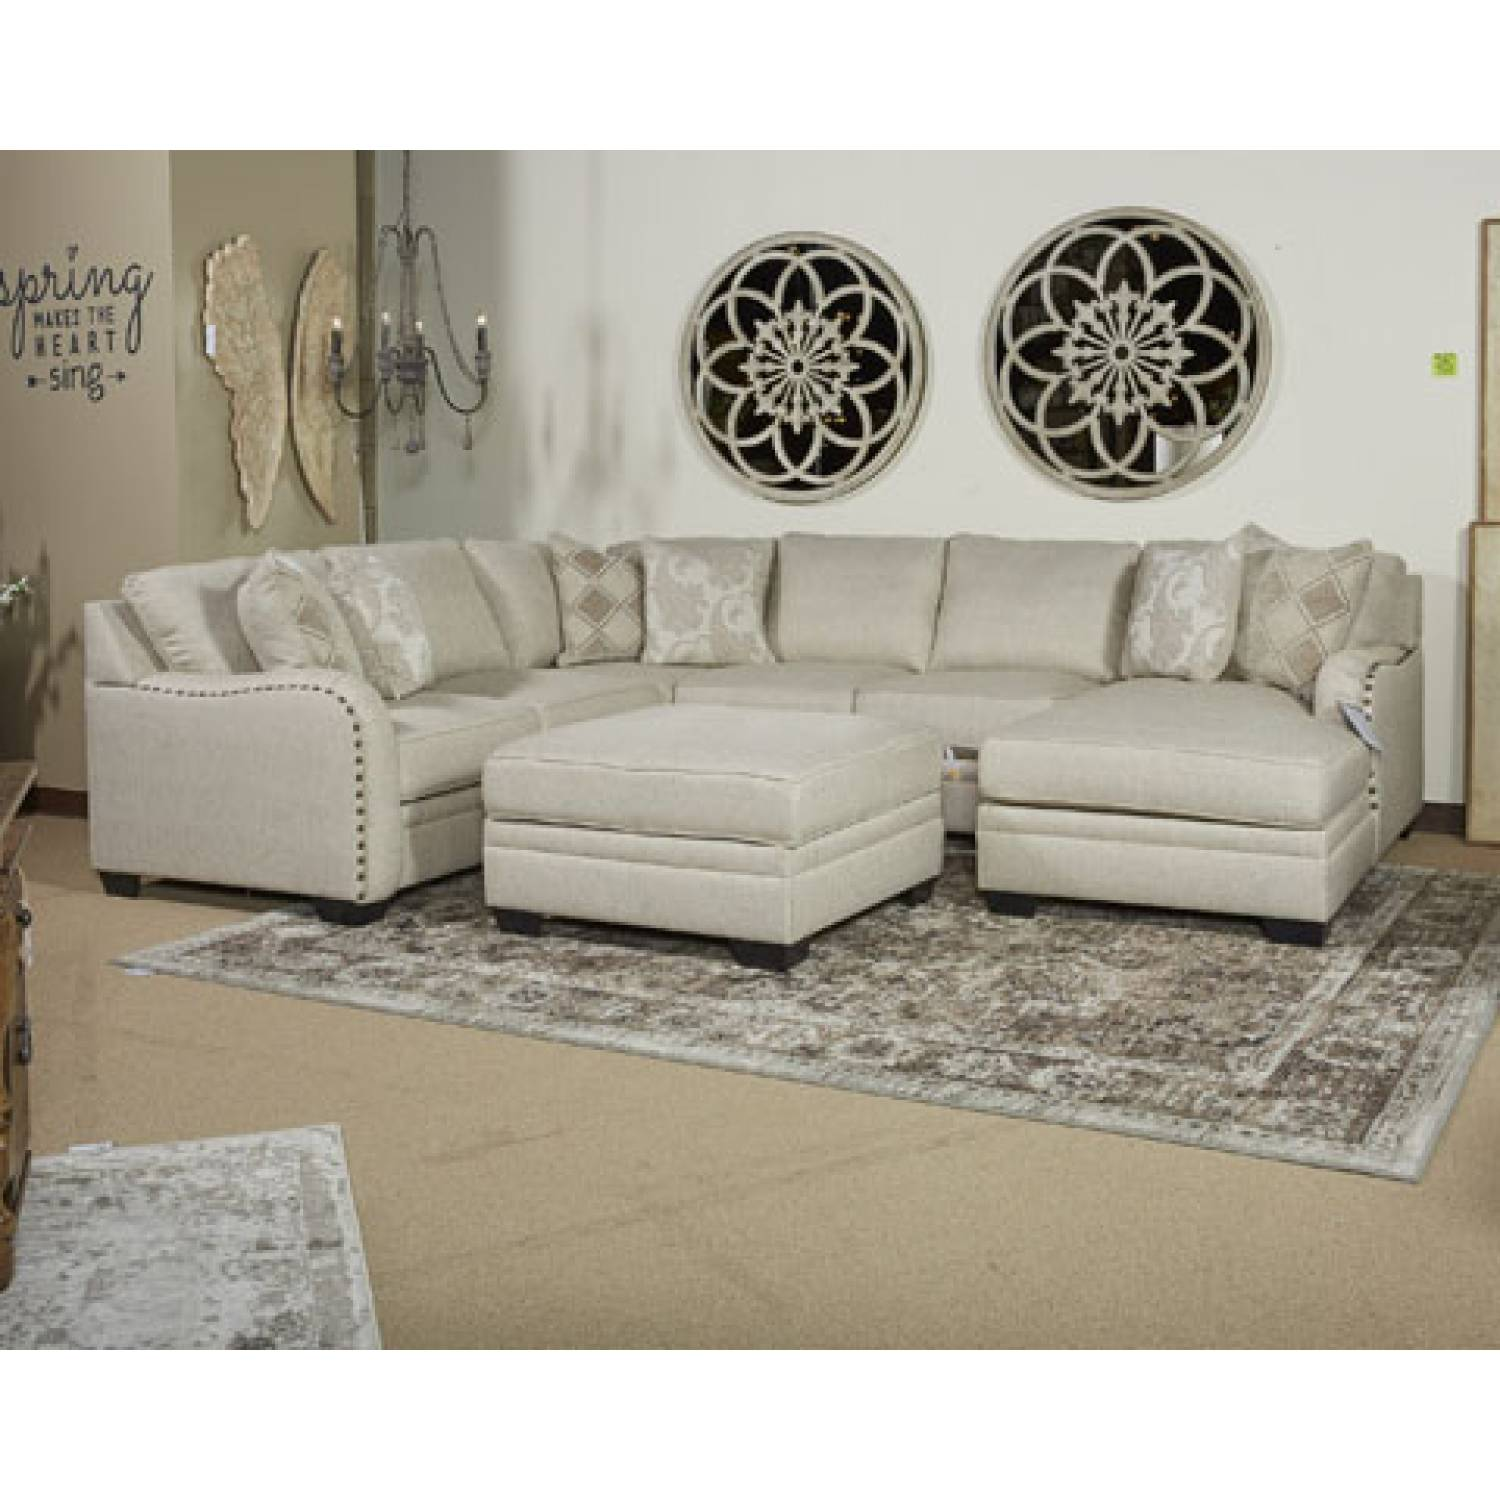 Labor Day Furniture Sale >> 52501 Luxora Ottoman With Storage